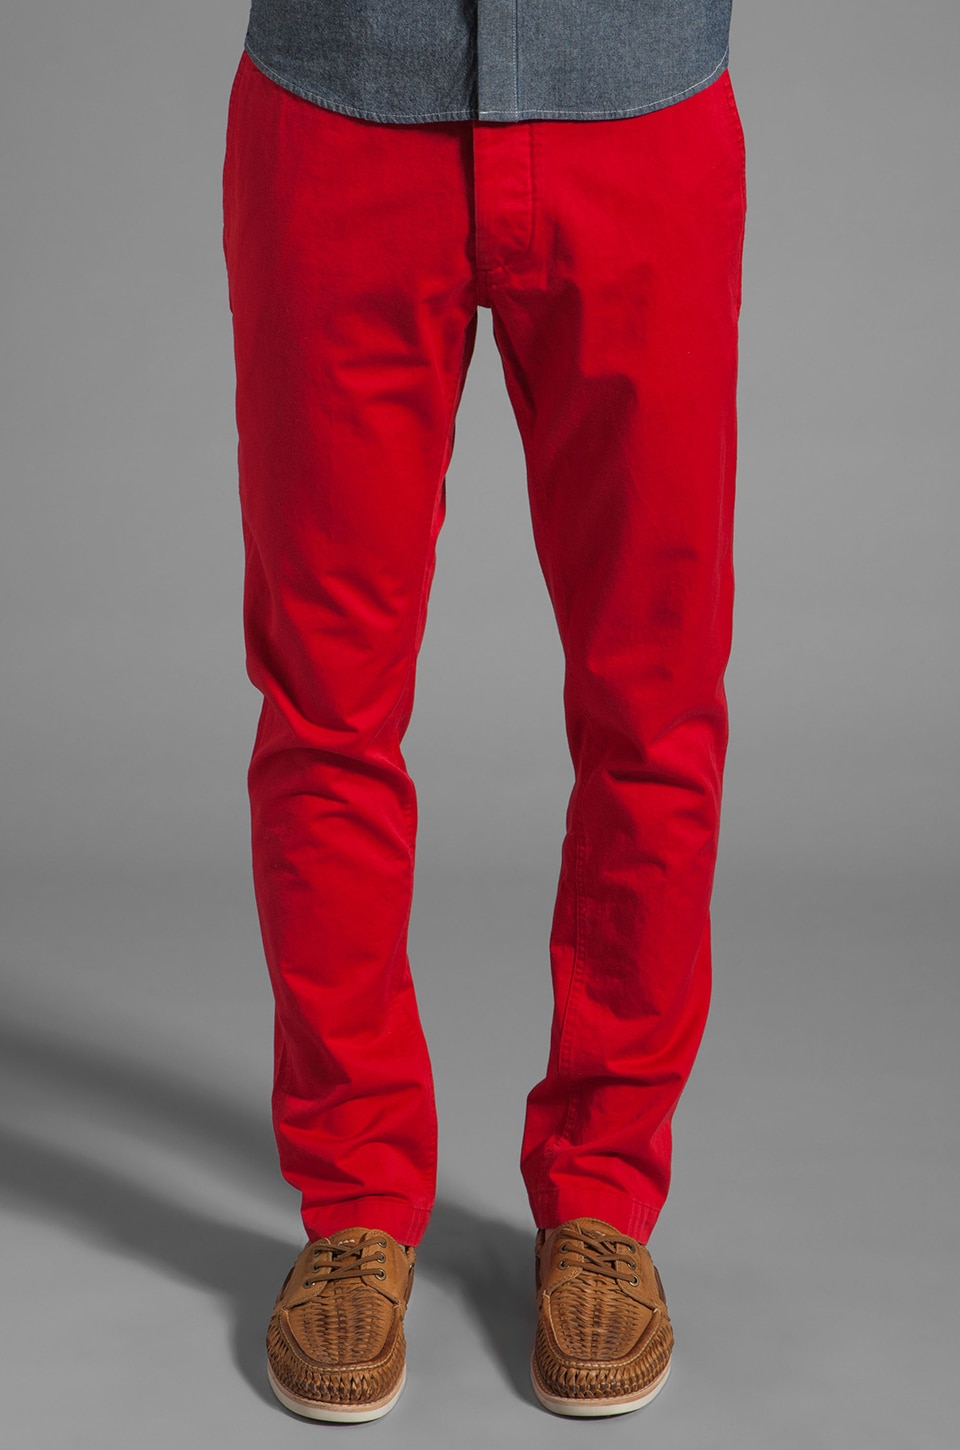 Shades of Grey by Micah Cohen Slim Fit Chino in Red Twill